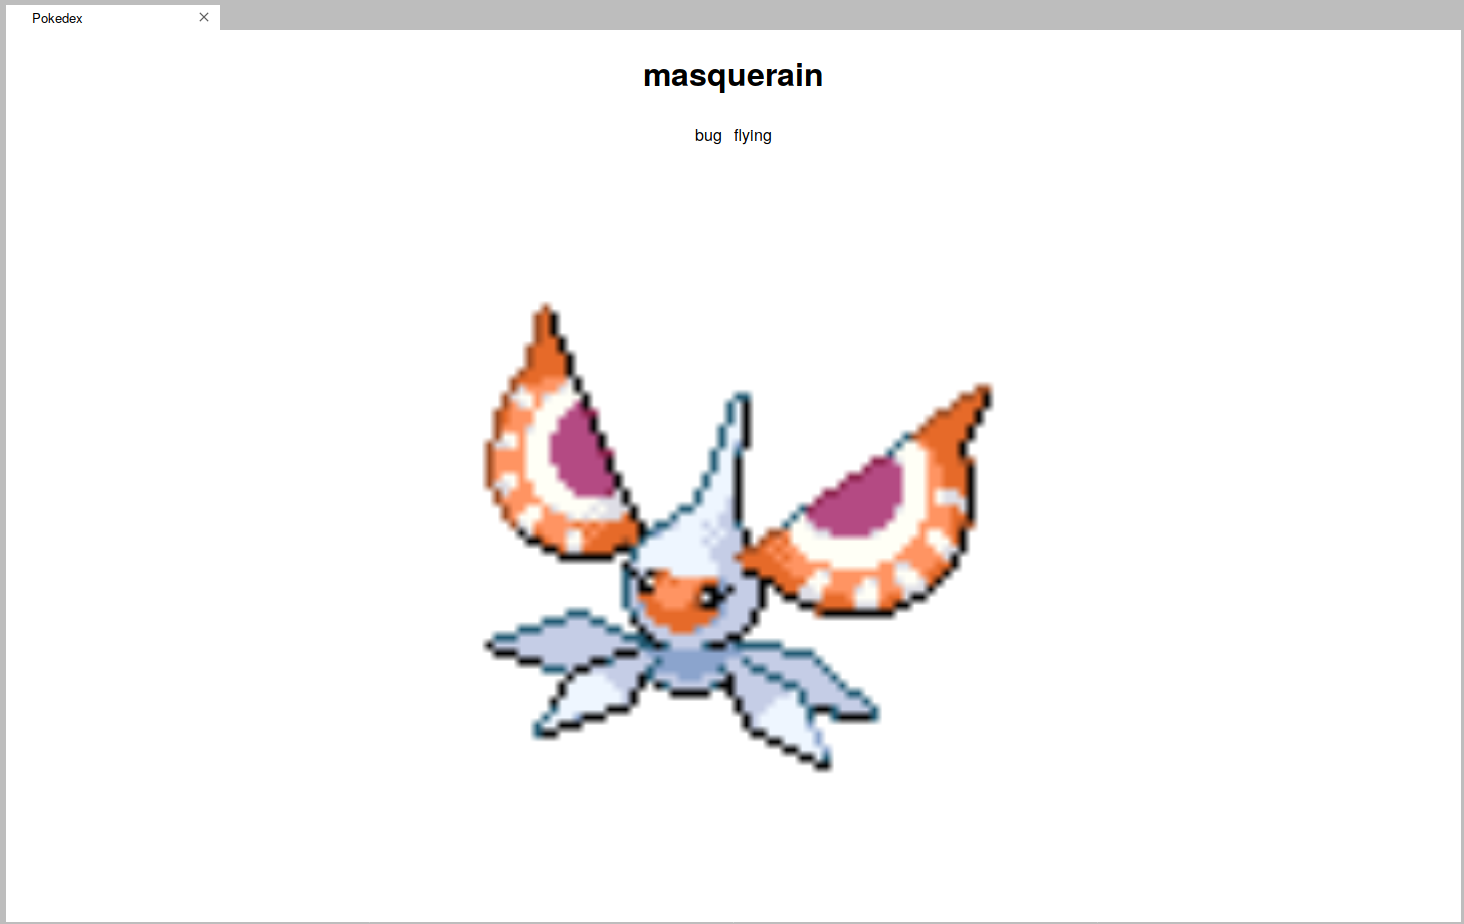 Demo image showing the pokedex entry of Masquerain